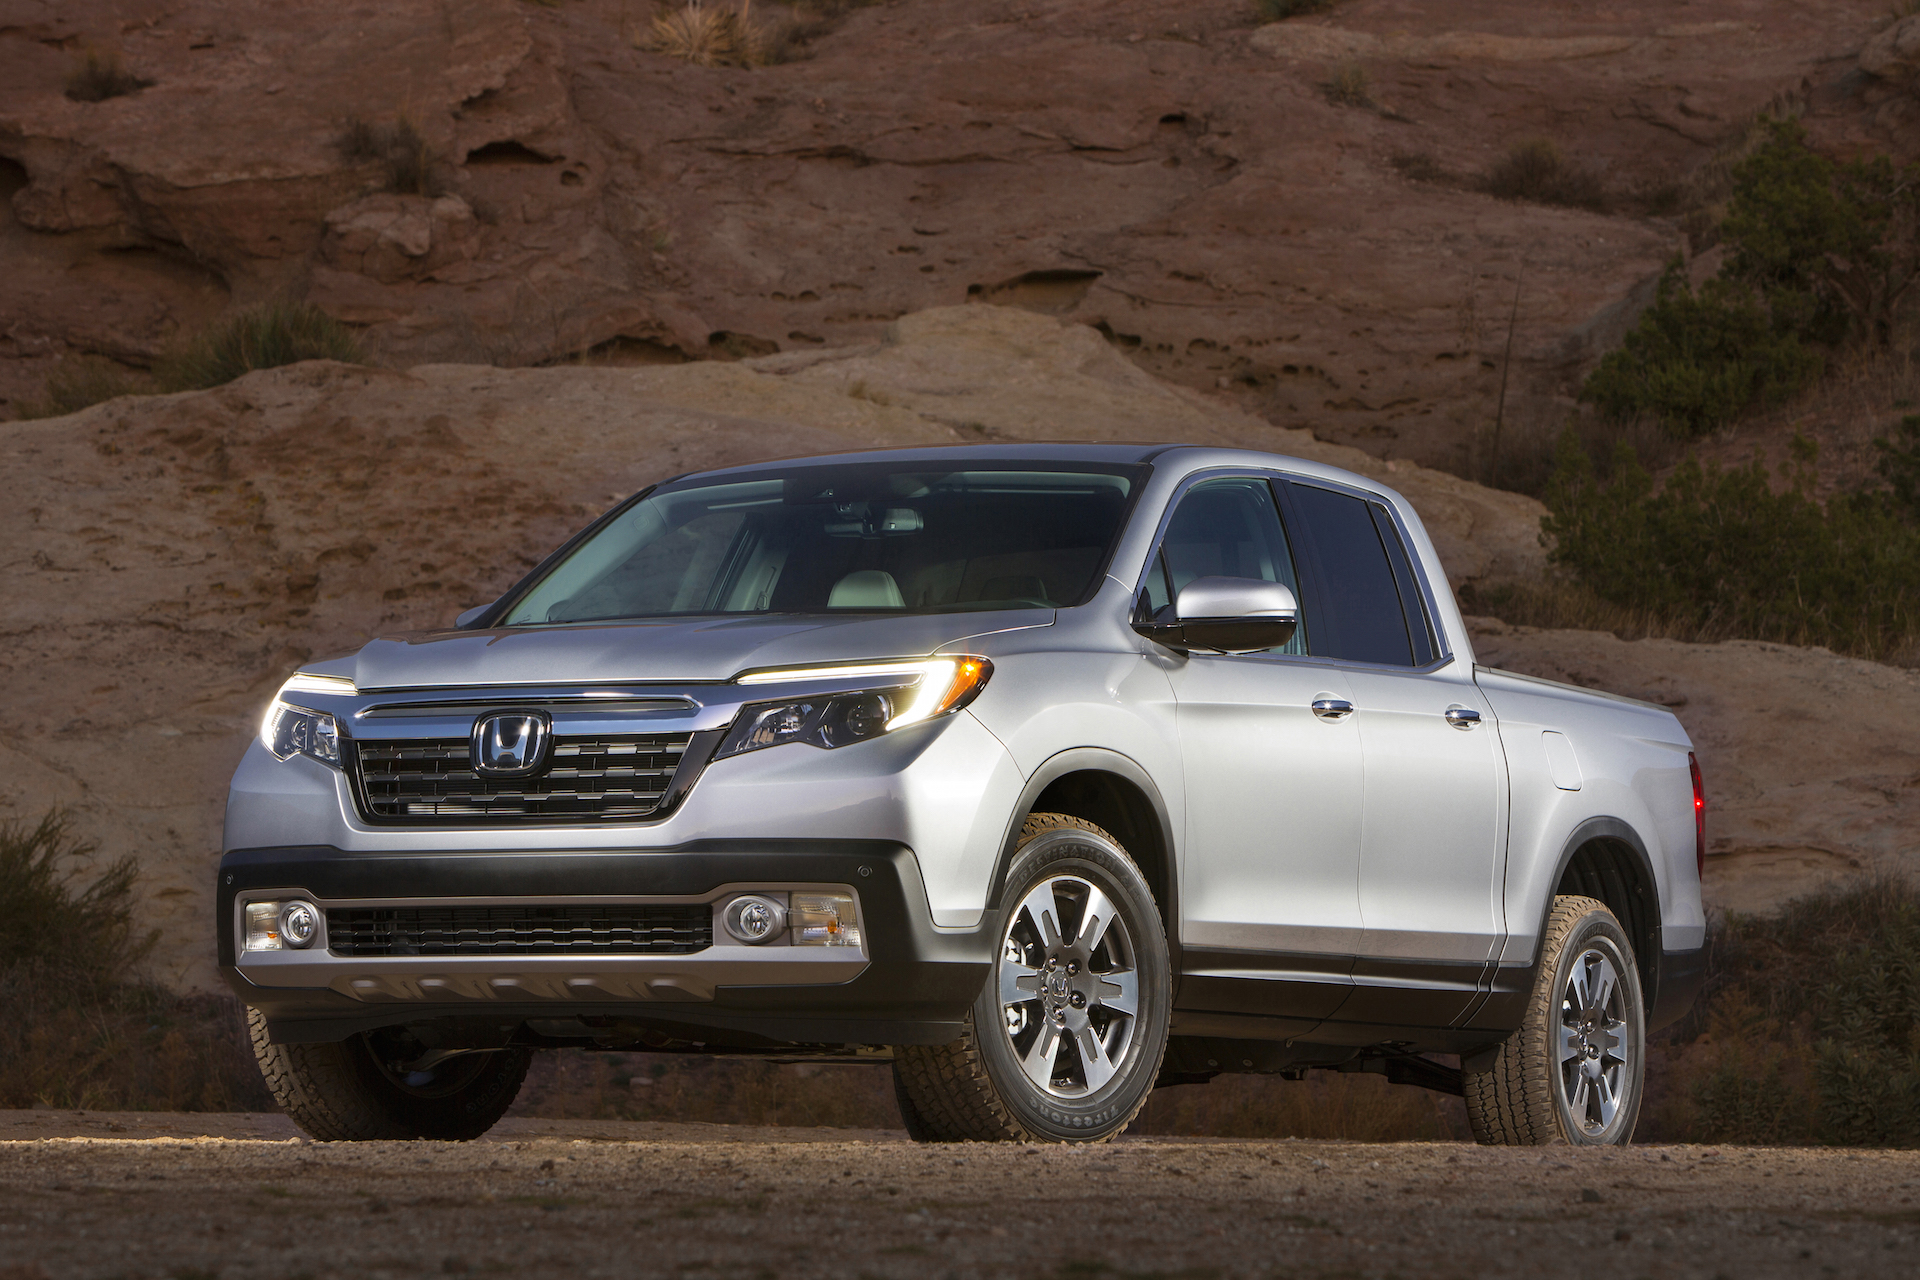 2017 honda ridgeline_100541998_h 2017 honda ridgeline recalled to fix electrical glitch 2017 Honda Ridgeline Interior at honlapkeszites.co